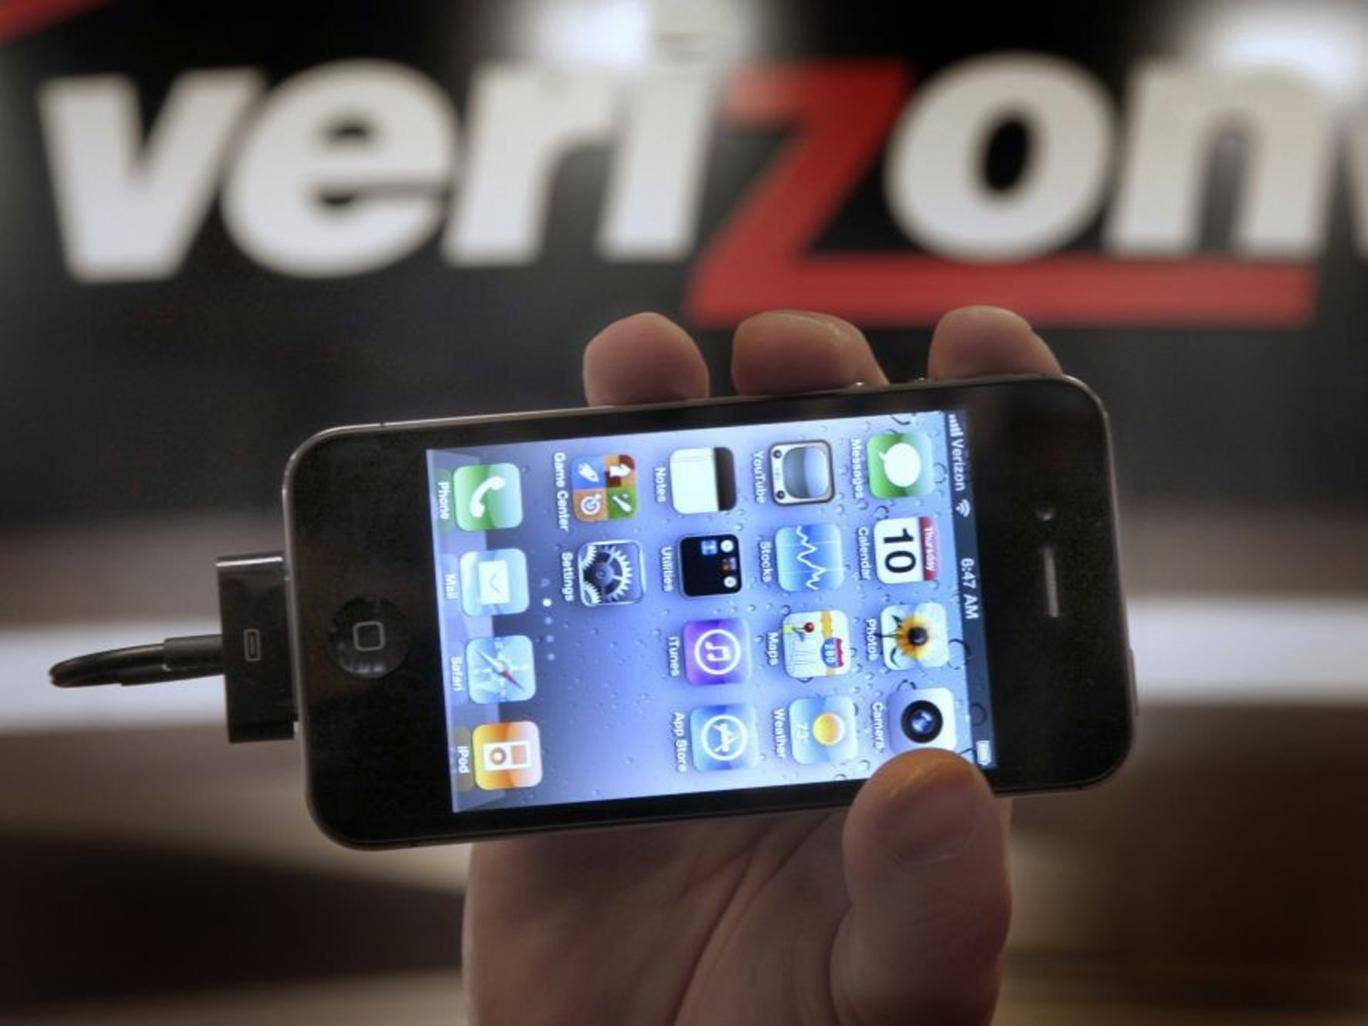 The order marked 'Top Secret' and issued by the US Foreign Intelligence Surveillance Court directs Verizon's Business Network Services Inc and Verizon Business Services units to hand over electronic data including all calling records on an 'ongoing, daily